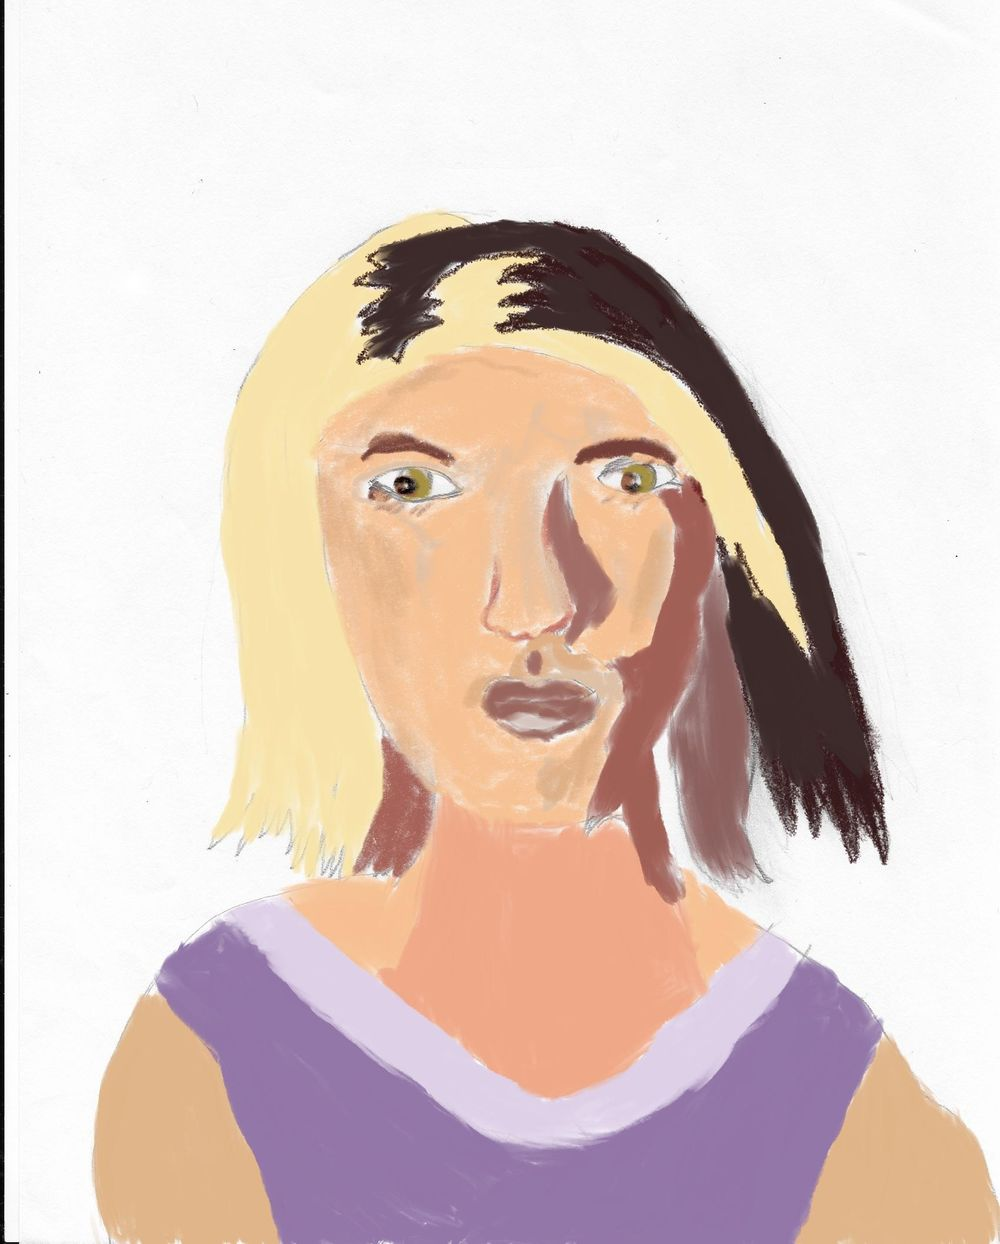 Animated Lady - image 2 - student project